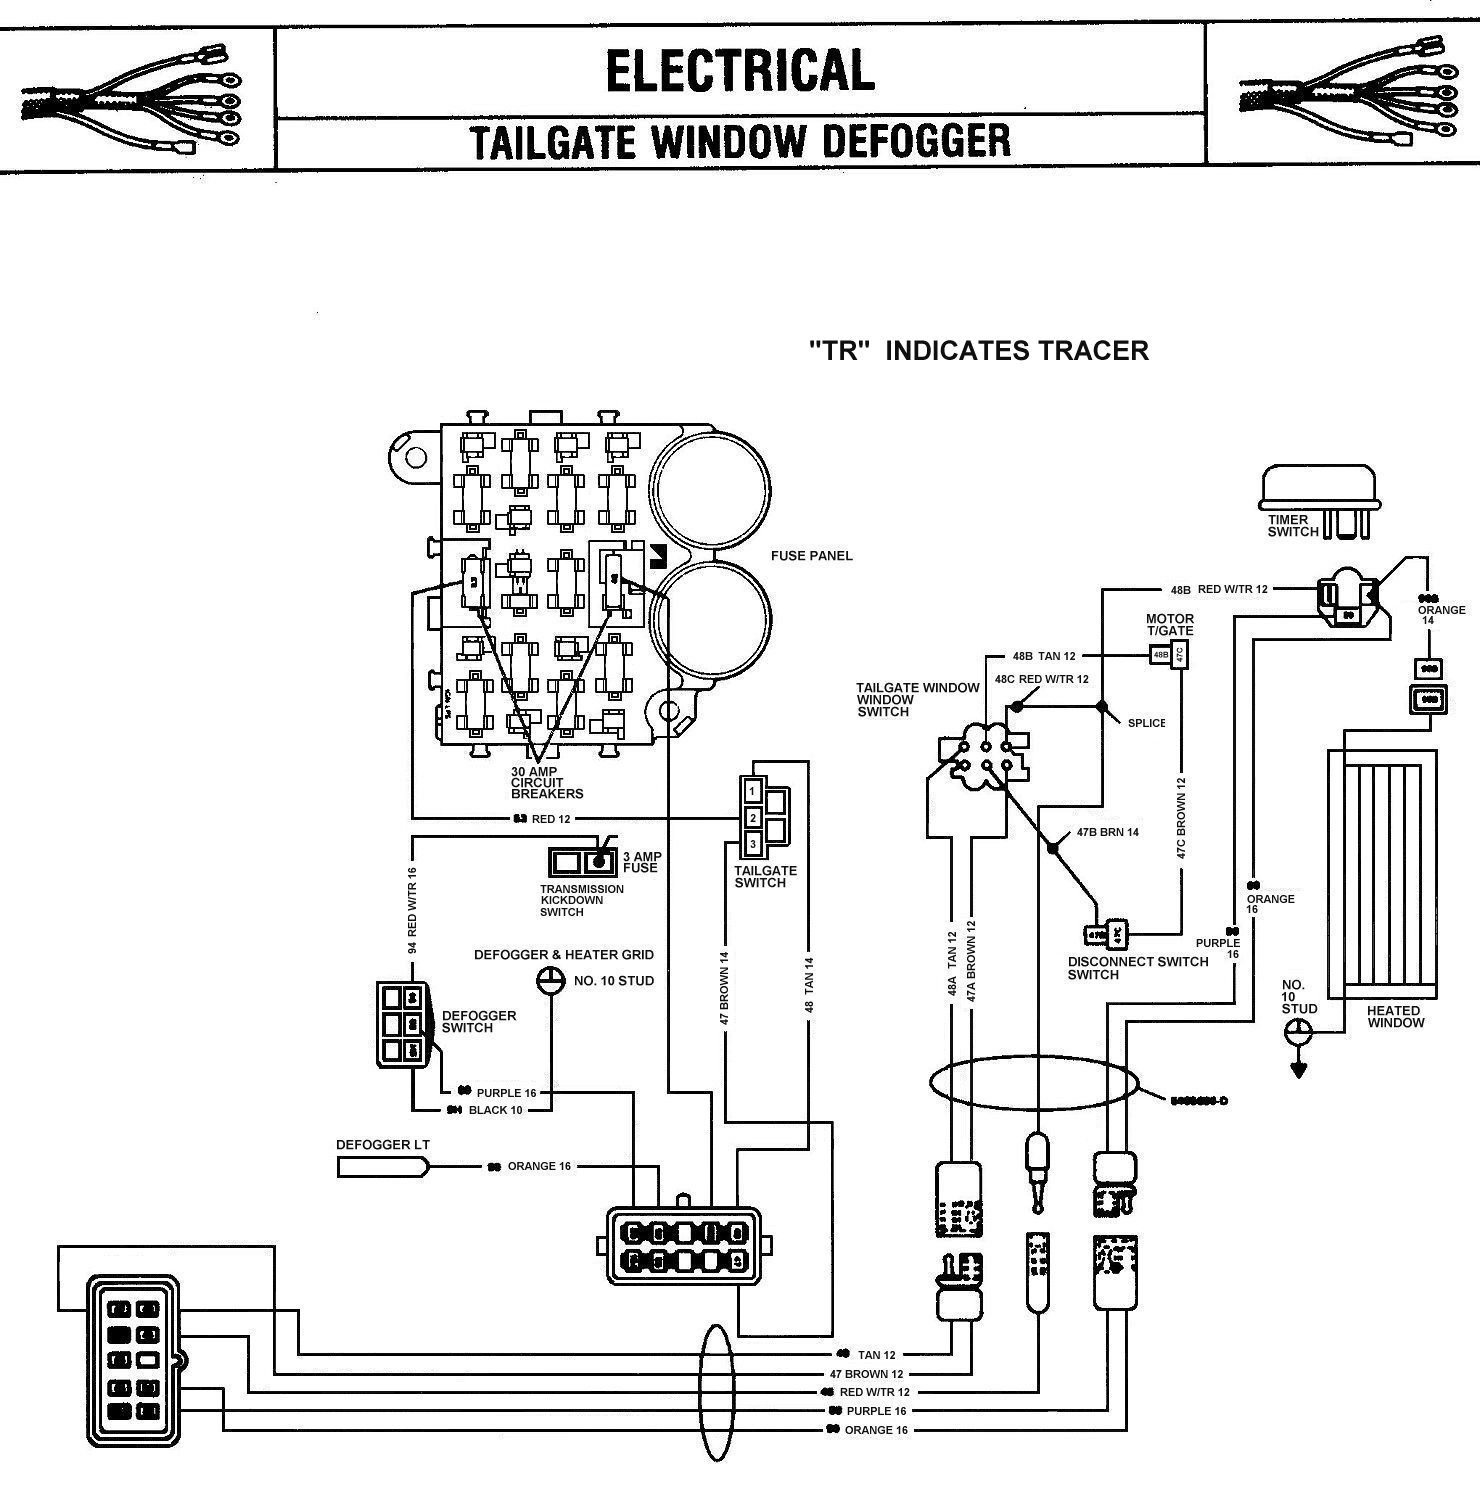 tom oljeep collins fsj wiring page rh oljeep com Jeep Tail Light Wiring Color 1979 Jeep CJ7 Wiring-Diagram